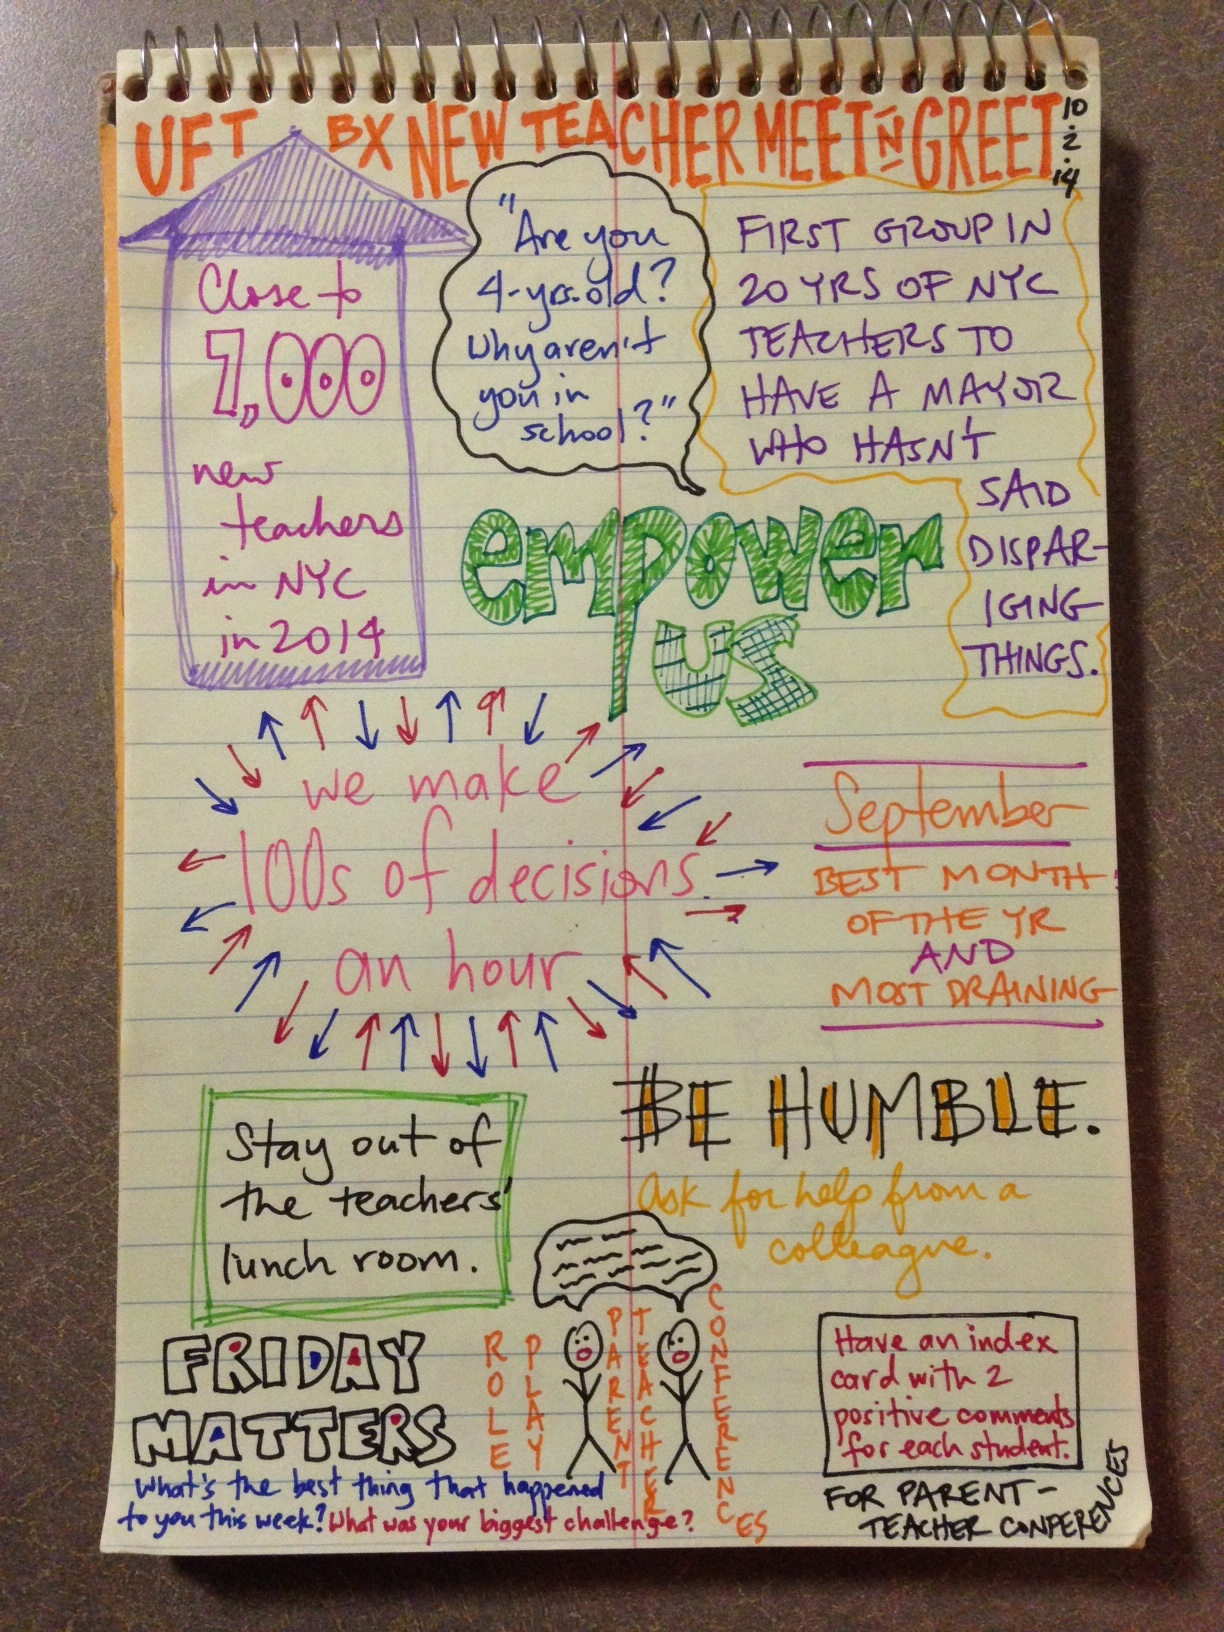 A page of my sketch notes from the event.